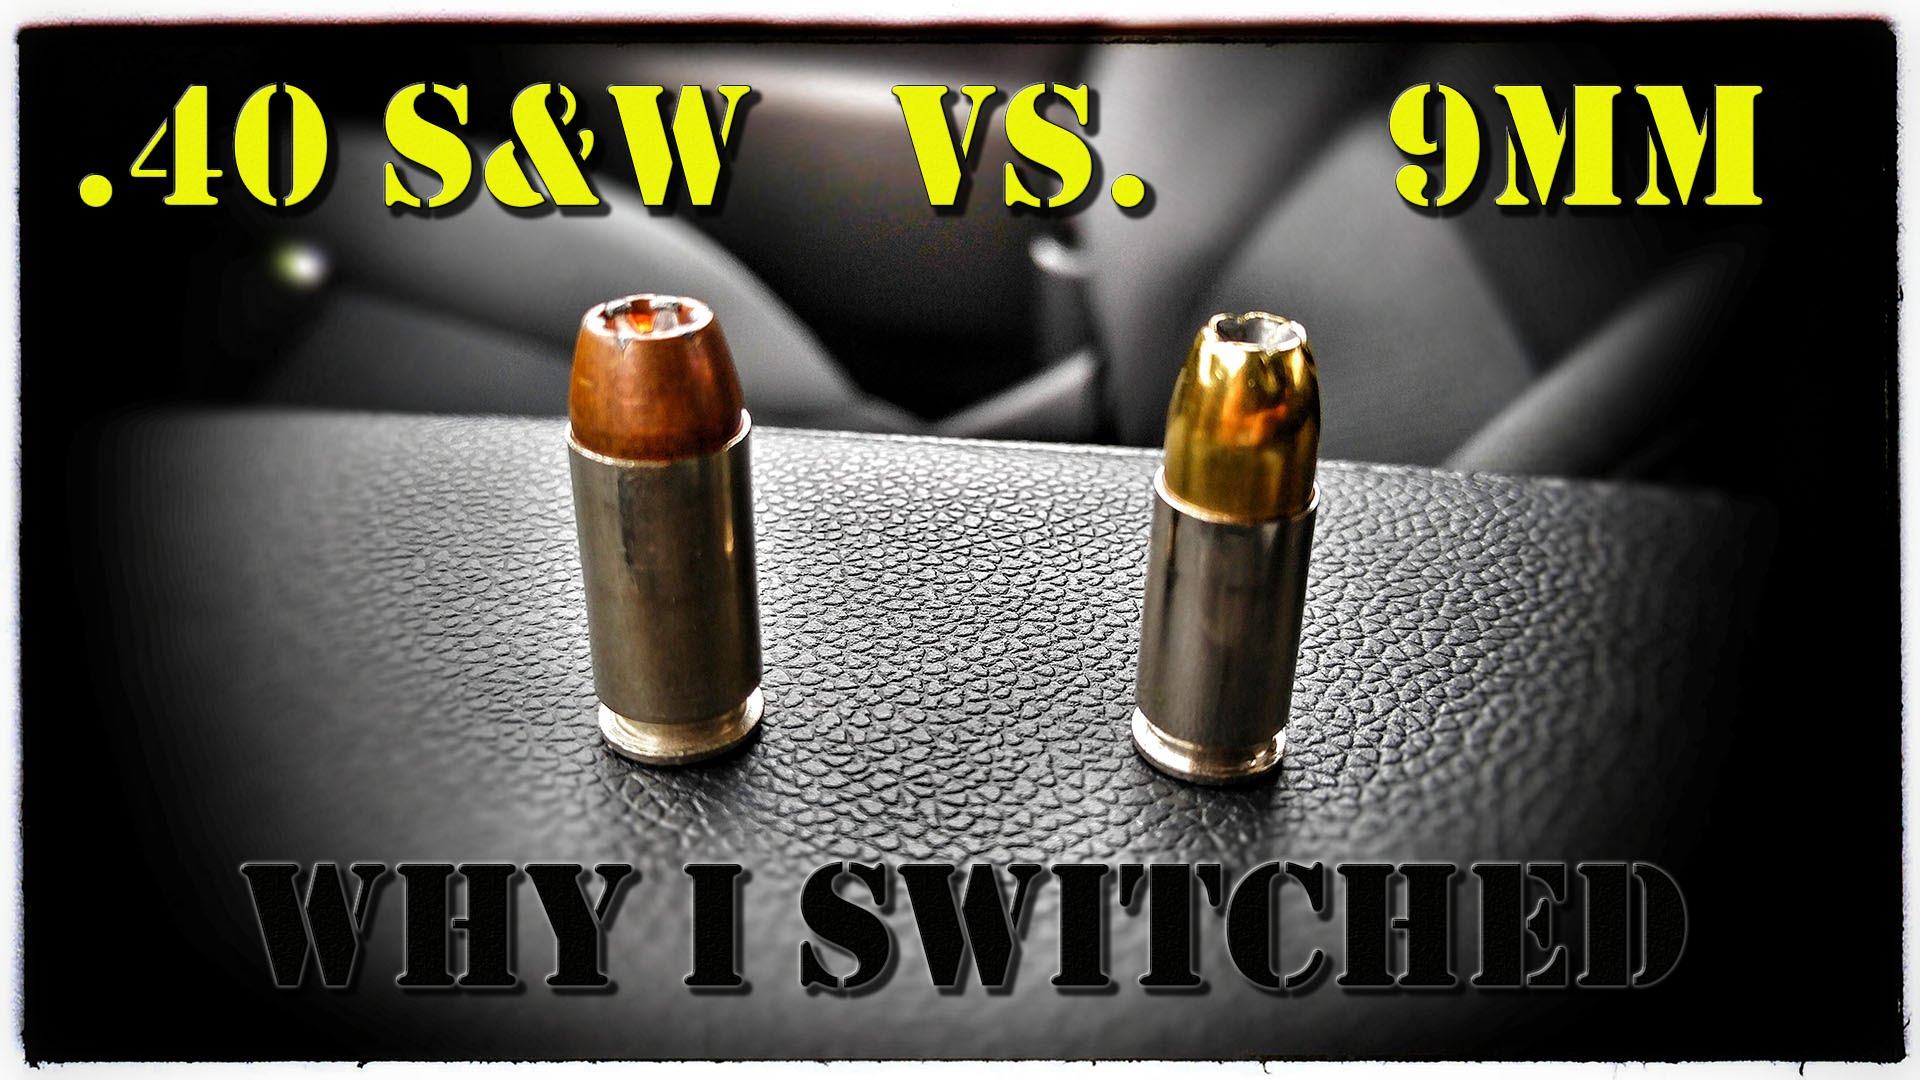 Why I Switched From 40 to 9mm